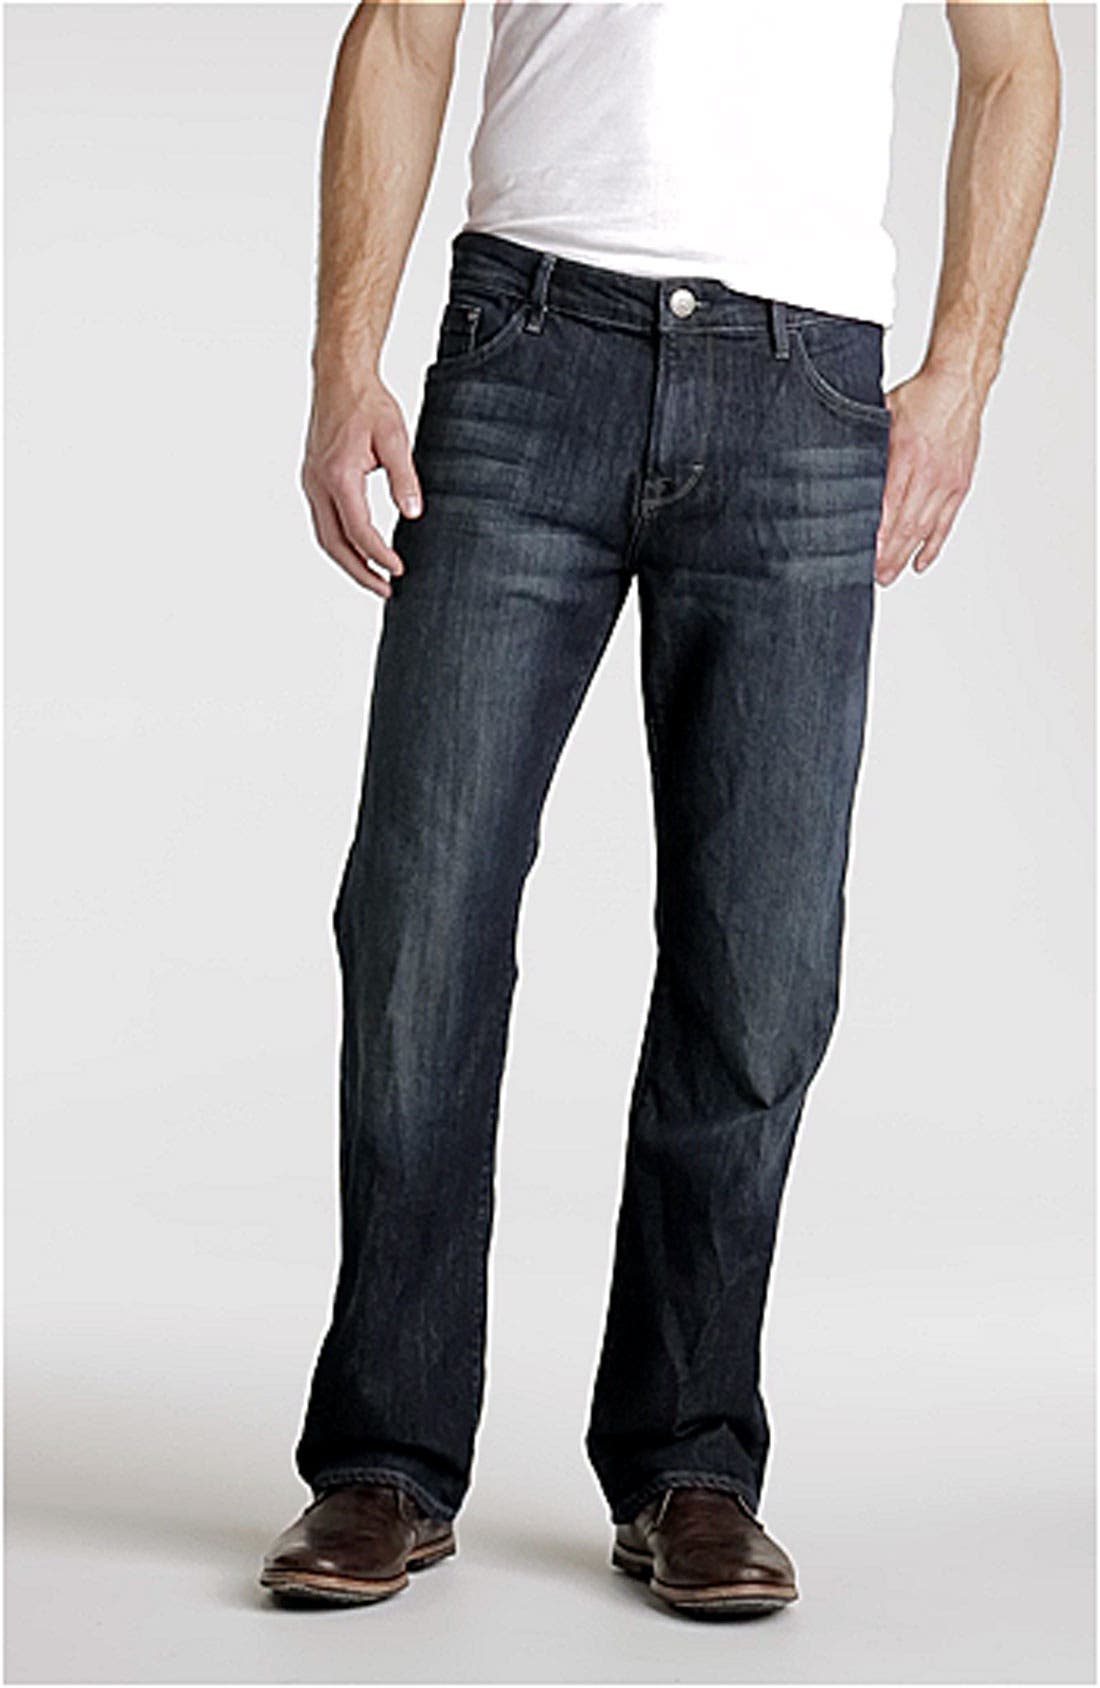 'Matt' Relaxed Fit Jeans,                             Alternate thumbnail 3, color,                             DEEP STANFORD COMFORT